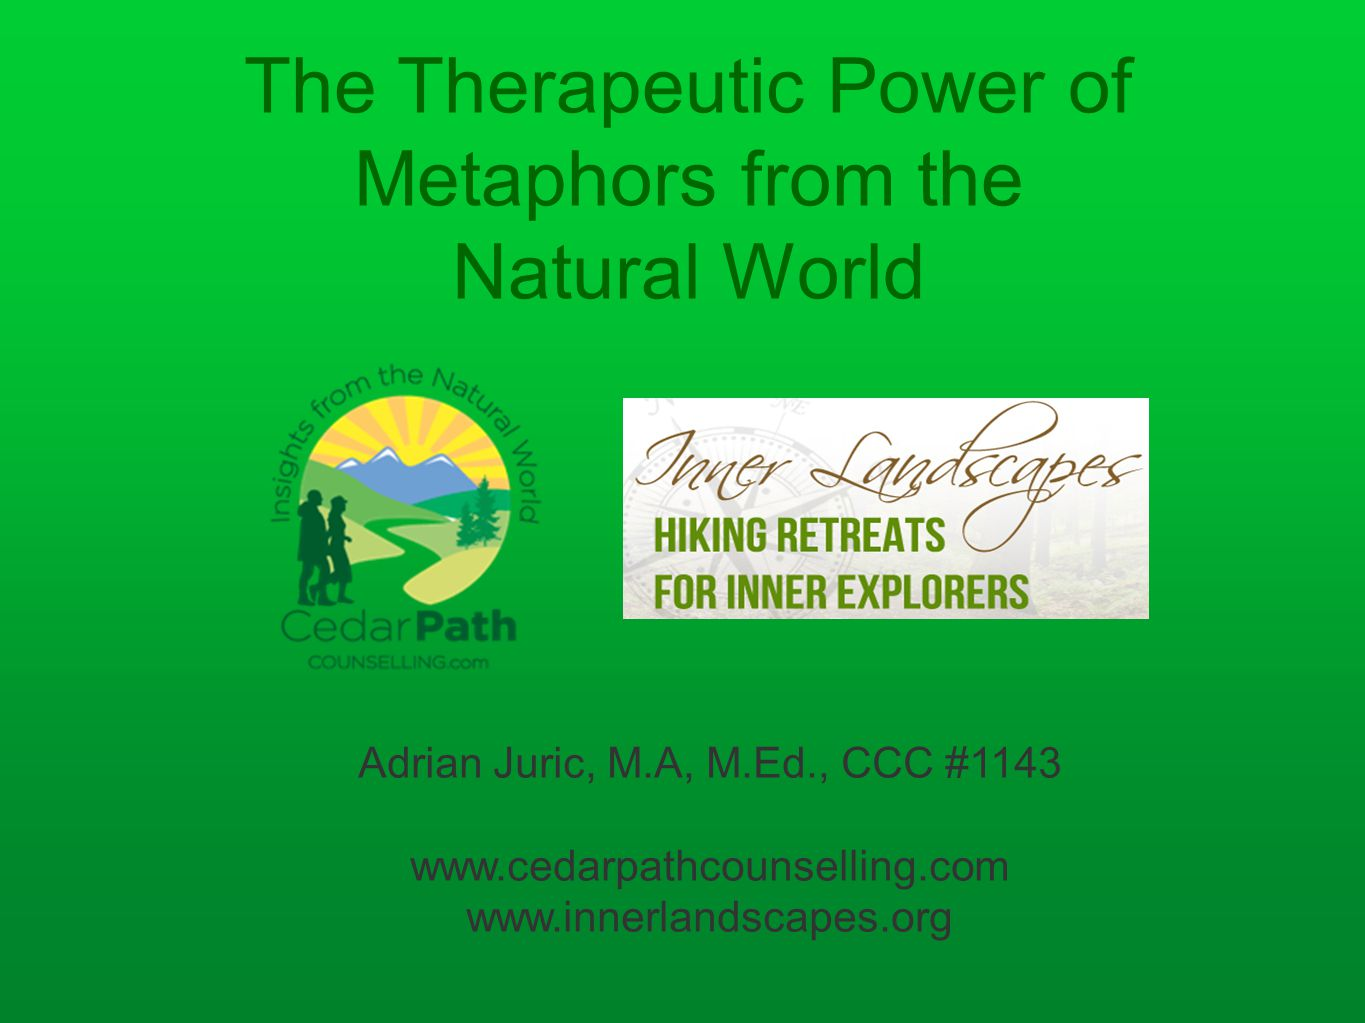 The Therapeutic Power of Metaphors from the Natural World Adrian Juric, M.A, M.Ed., CCC #1143 www.cedarpathcounselling.com www.innerlandscapes.org